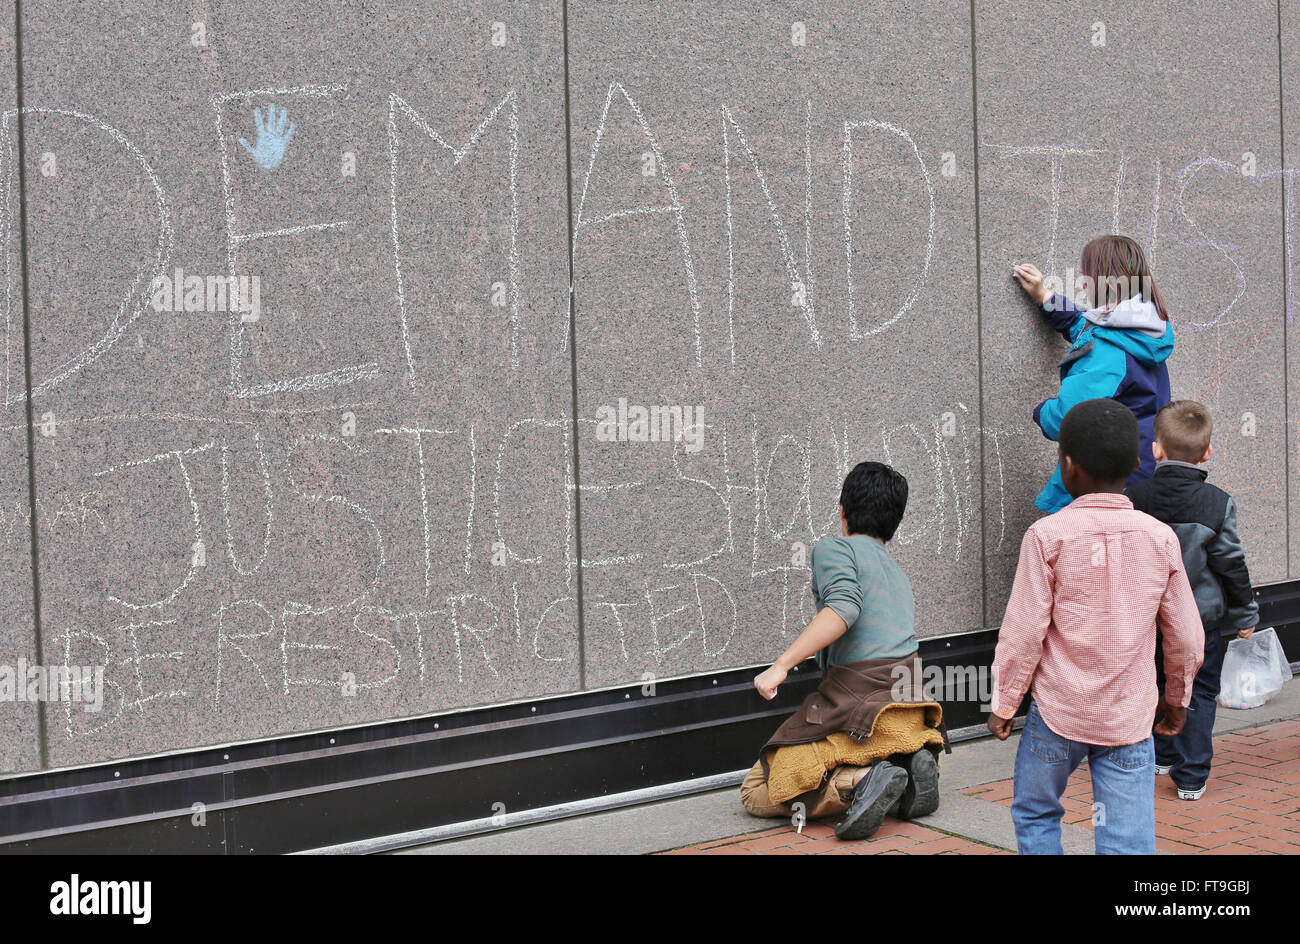 Minneapolis, Minnesota, USA. 26th March, 2016. Children write with chalk on the building, as Black Lives Matter - Stock Image